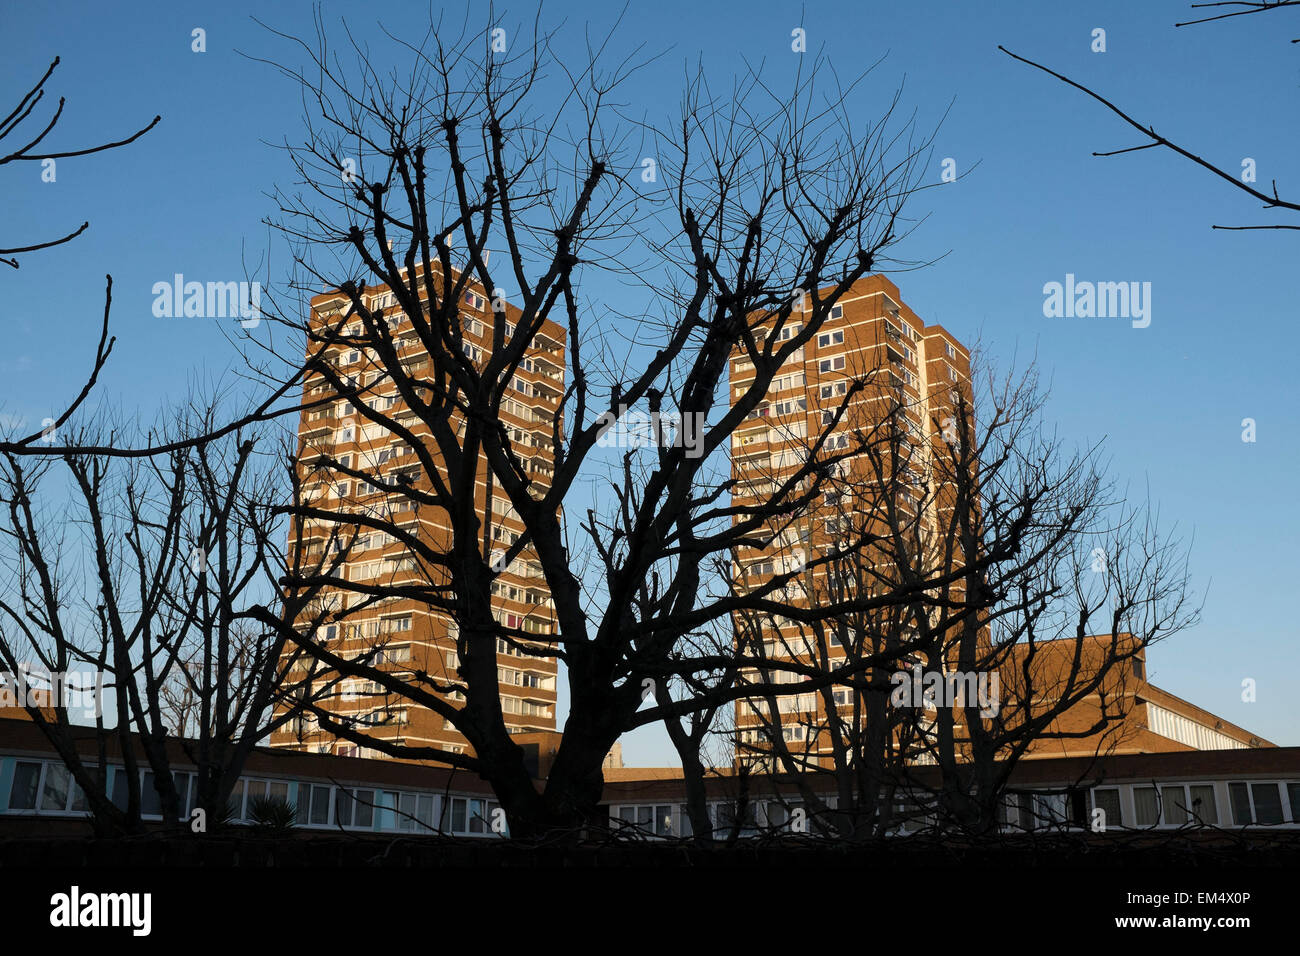 Silhoutette of trees in front of two council housing tower blocks in Southwark, London, UK. - Stock Image